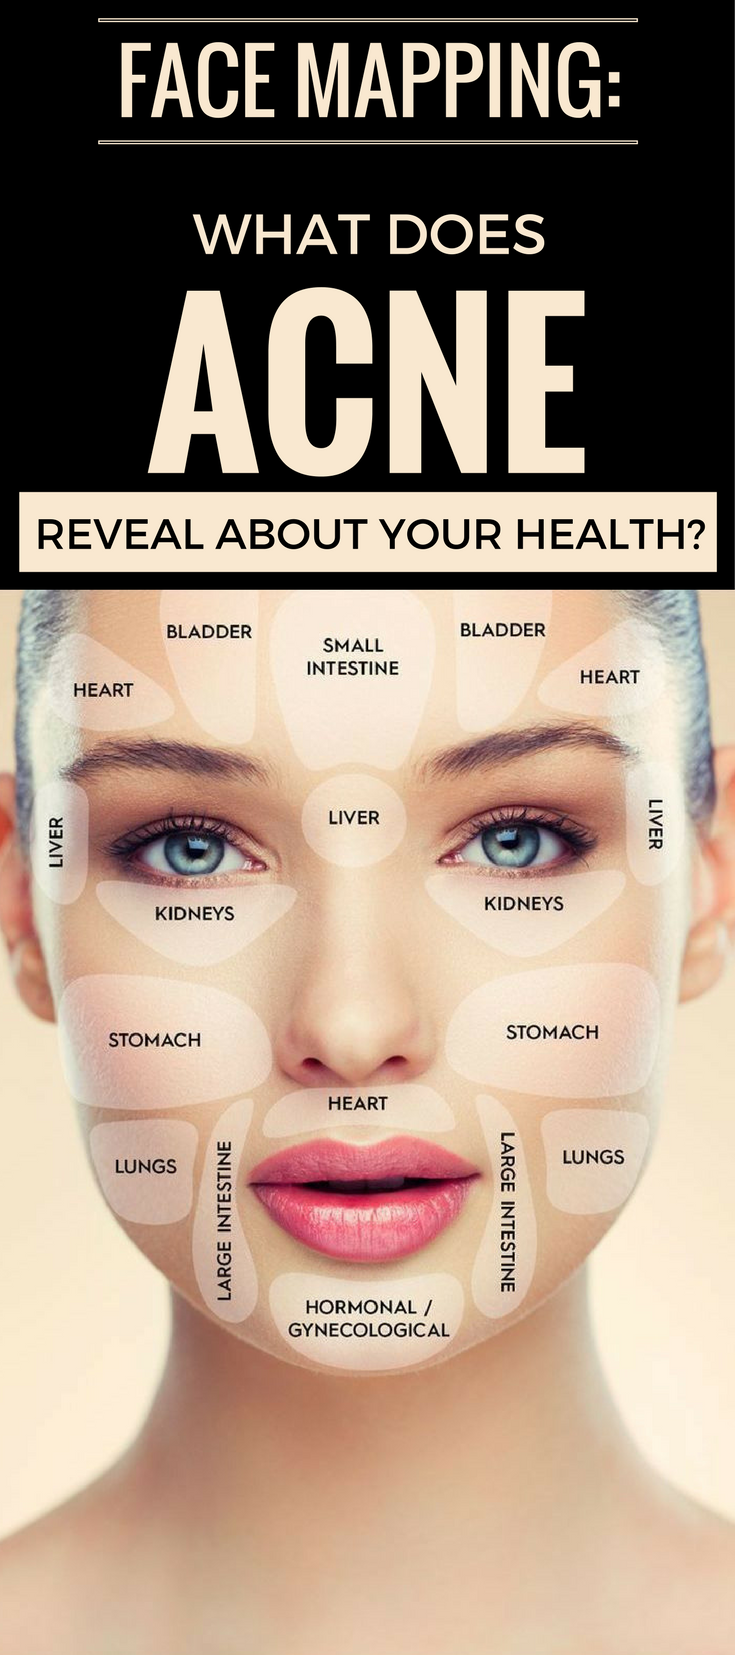 face mapping what does acne reveal about your health important acne area meaning acne diagram face [ 735 x 1655 Pixel ]